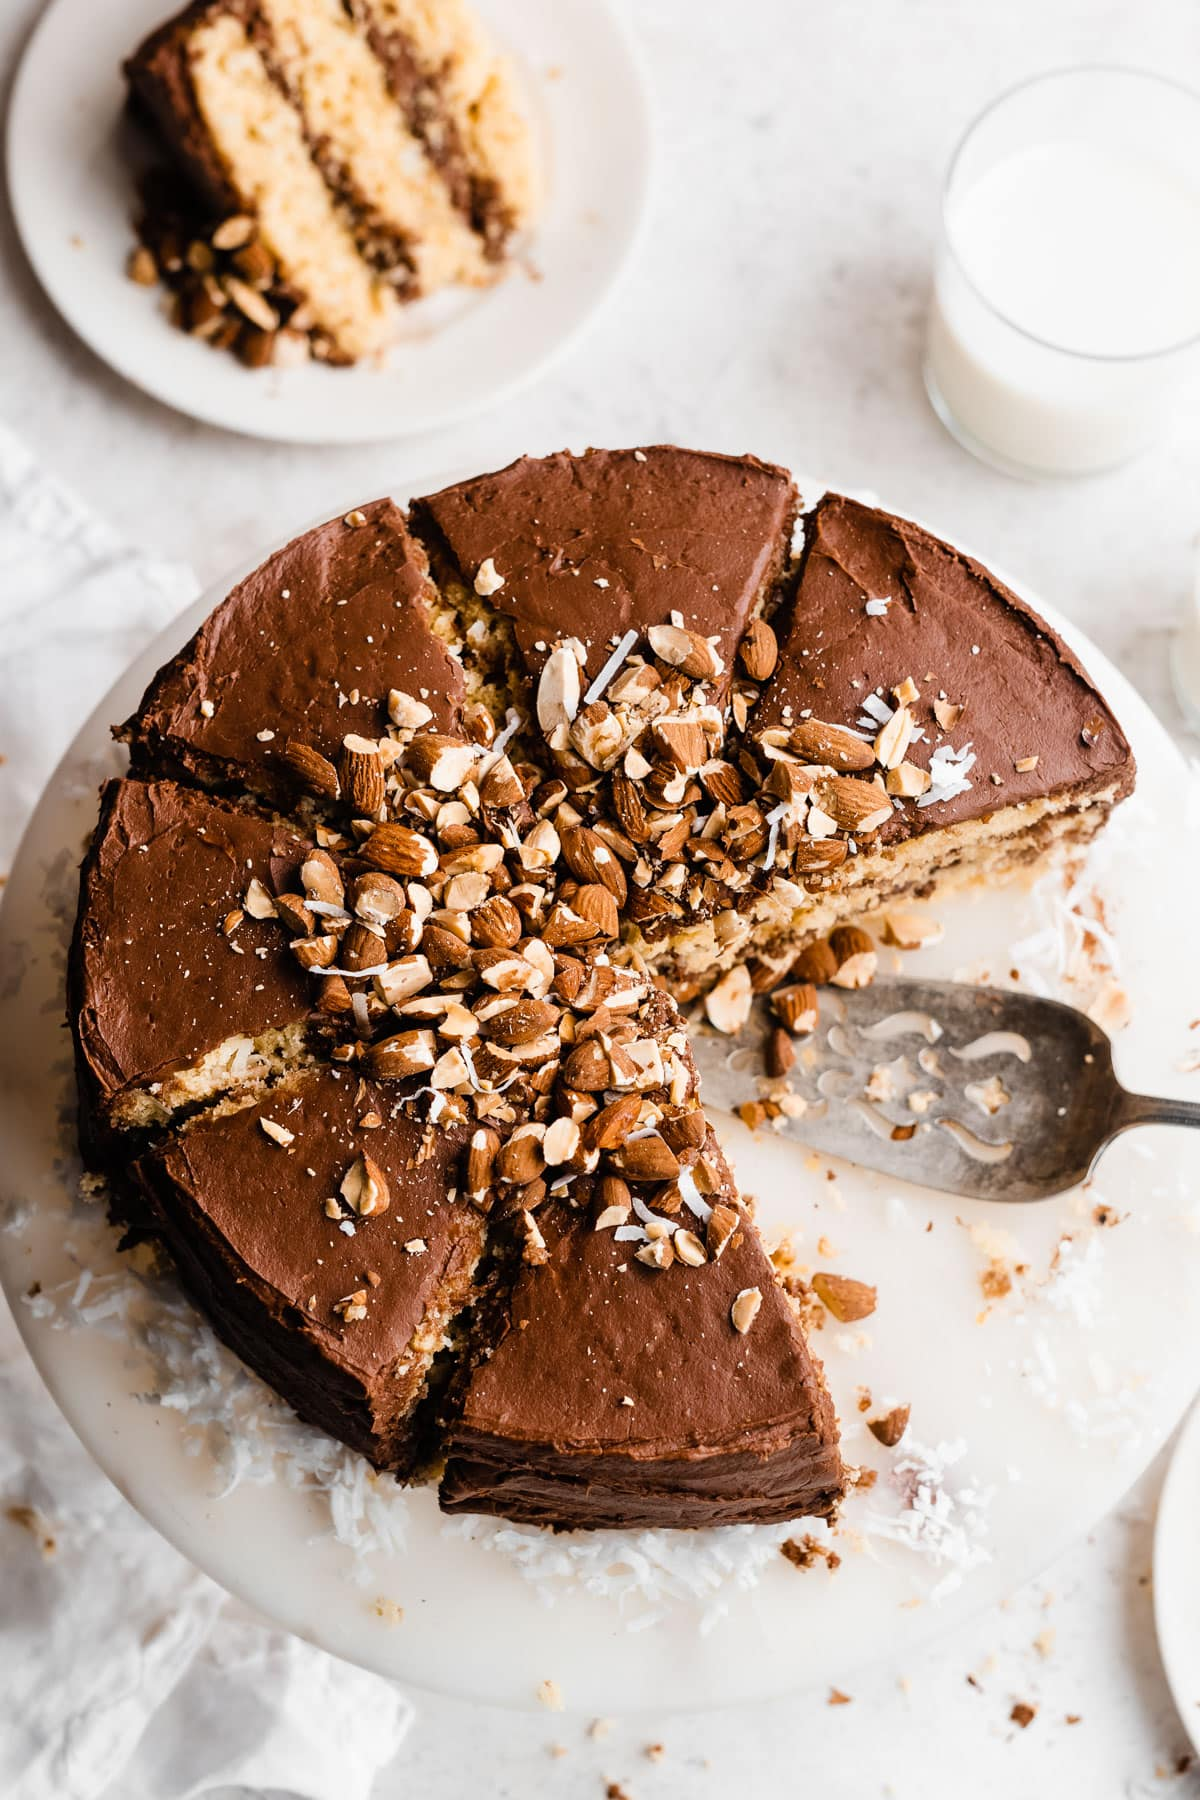 Almond Joy Cake-Coconut cake with chocolate frosting and almonds. Tastes like an Almond Joy!